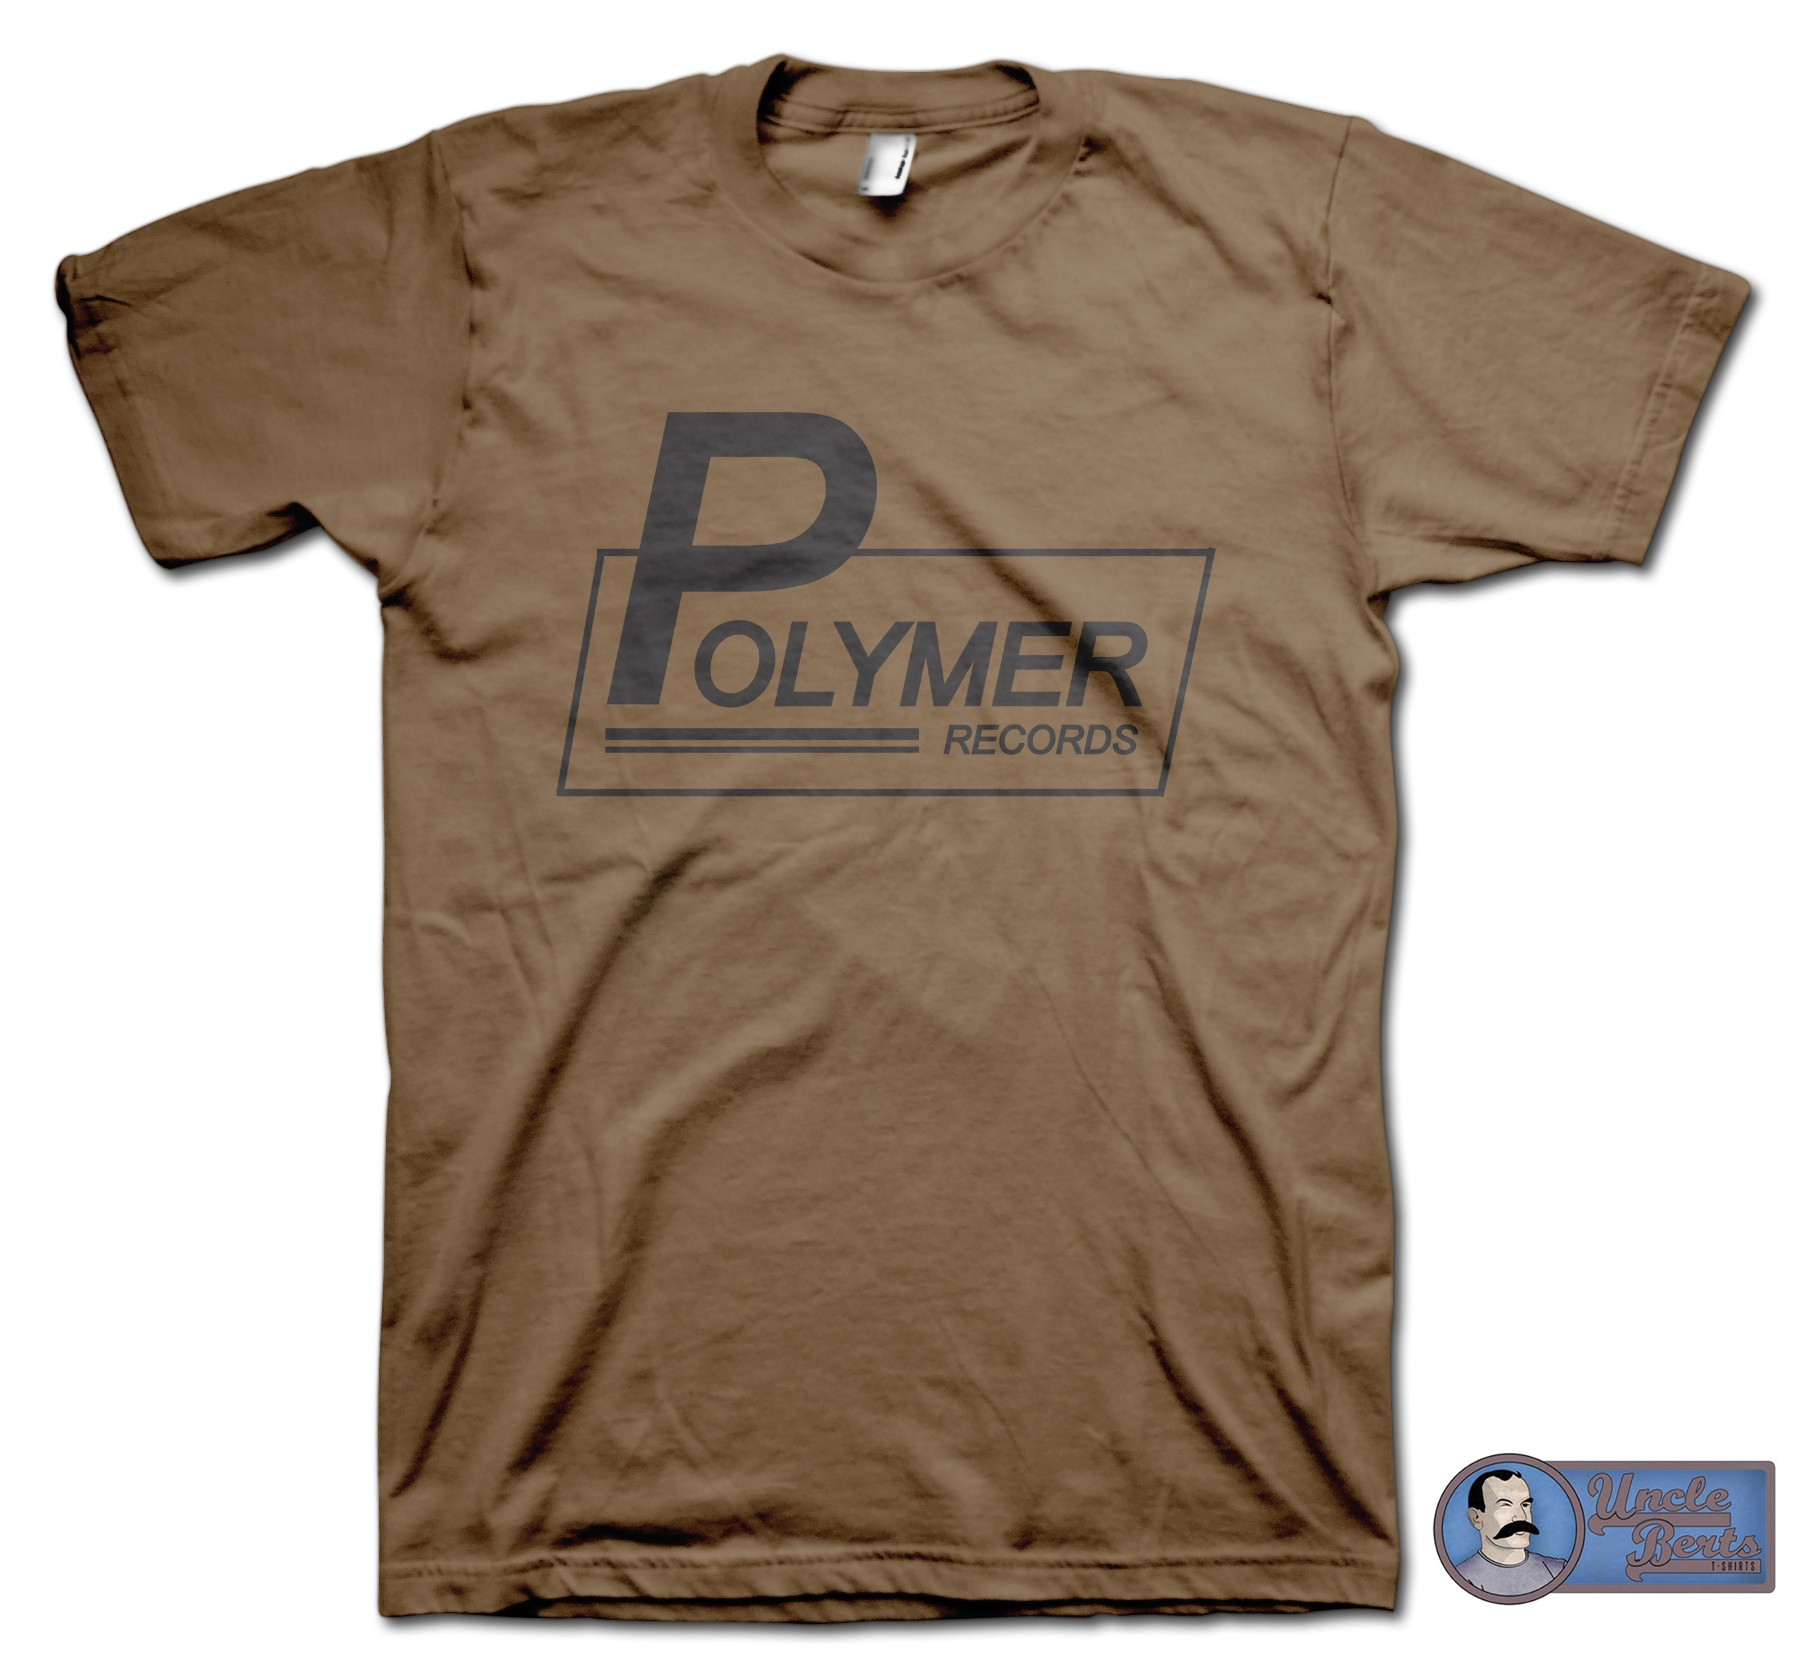 The Spinal Tap (1984) Inspired Polymer Records T-Shirt